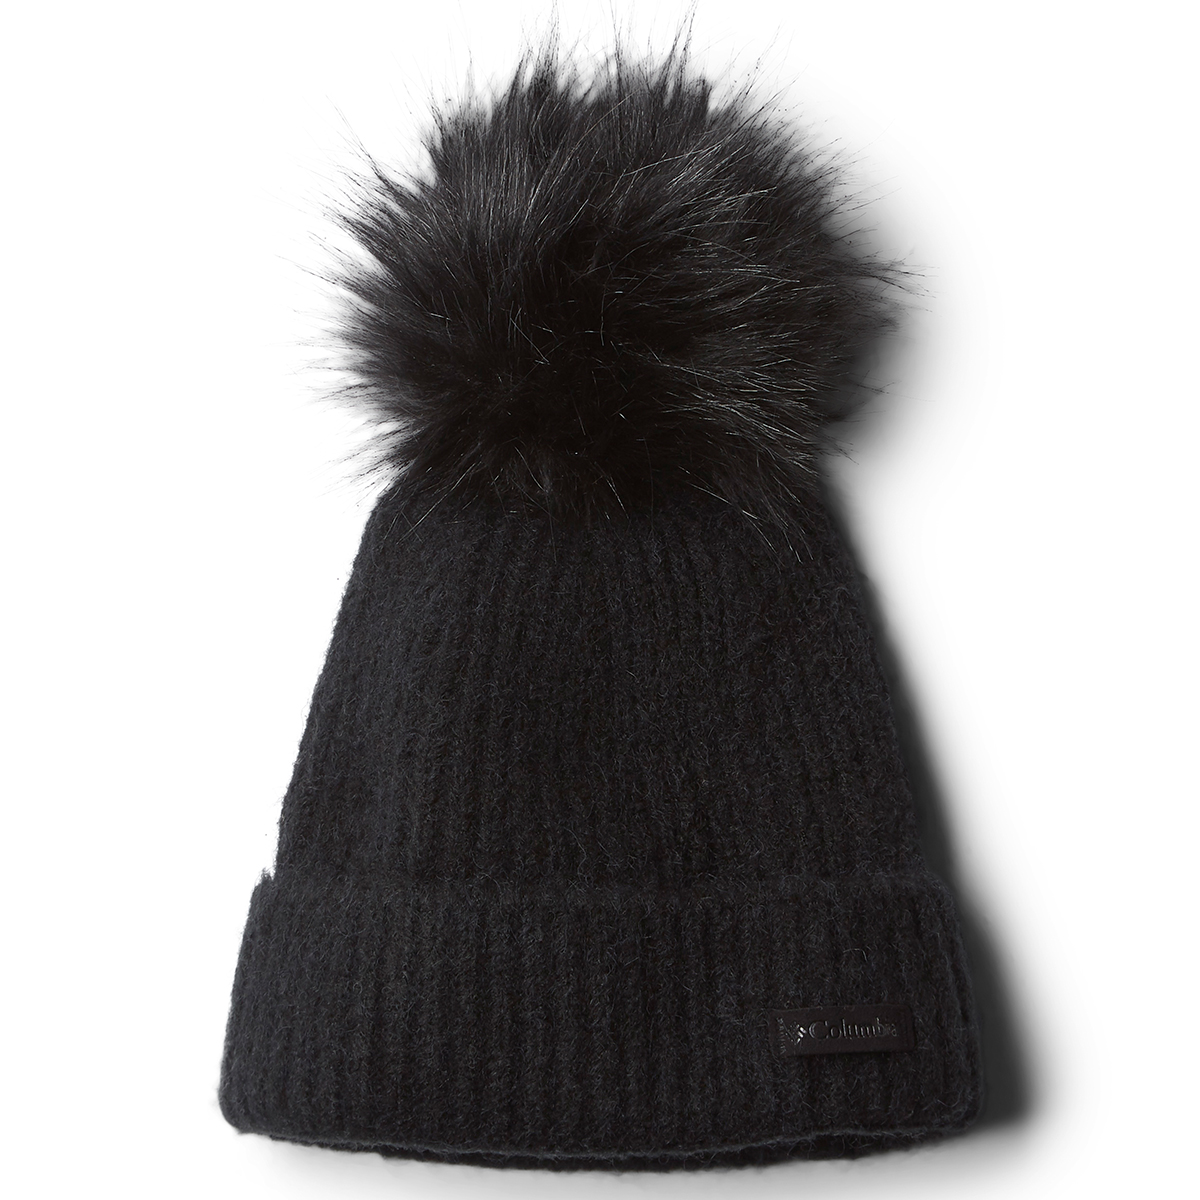 Columbia Women's Winter Blur Pom Pom Beanie - Black, ONESIZE